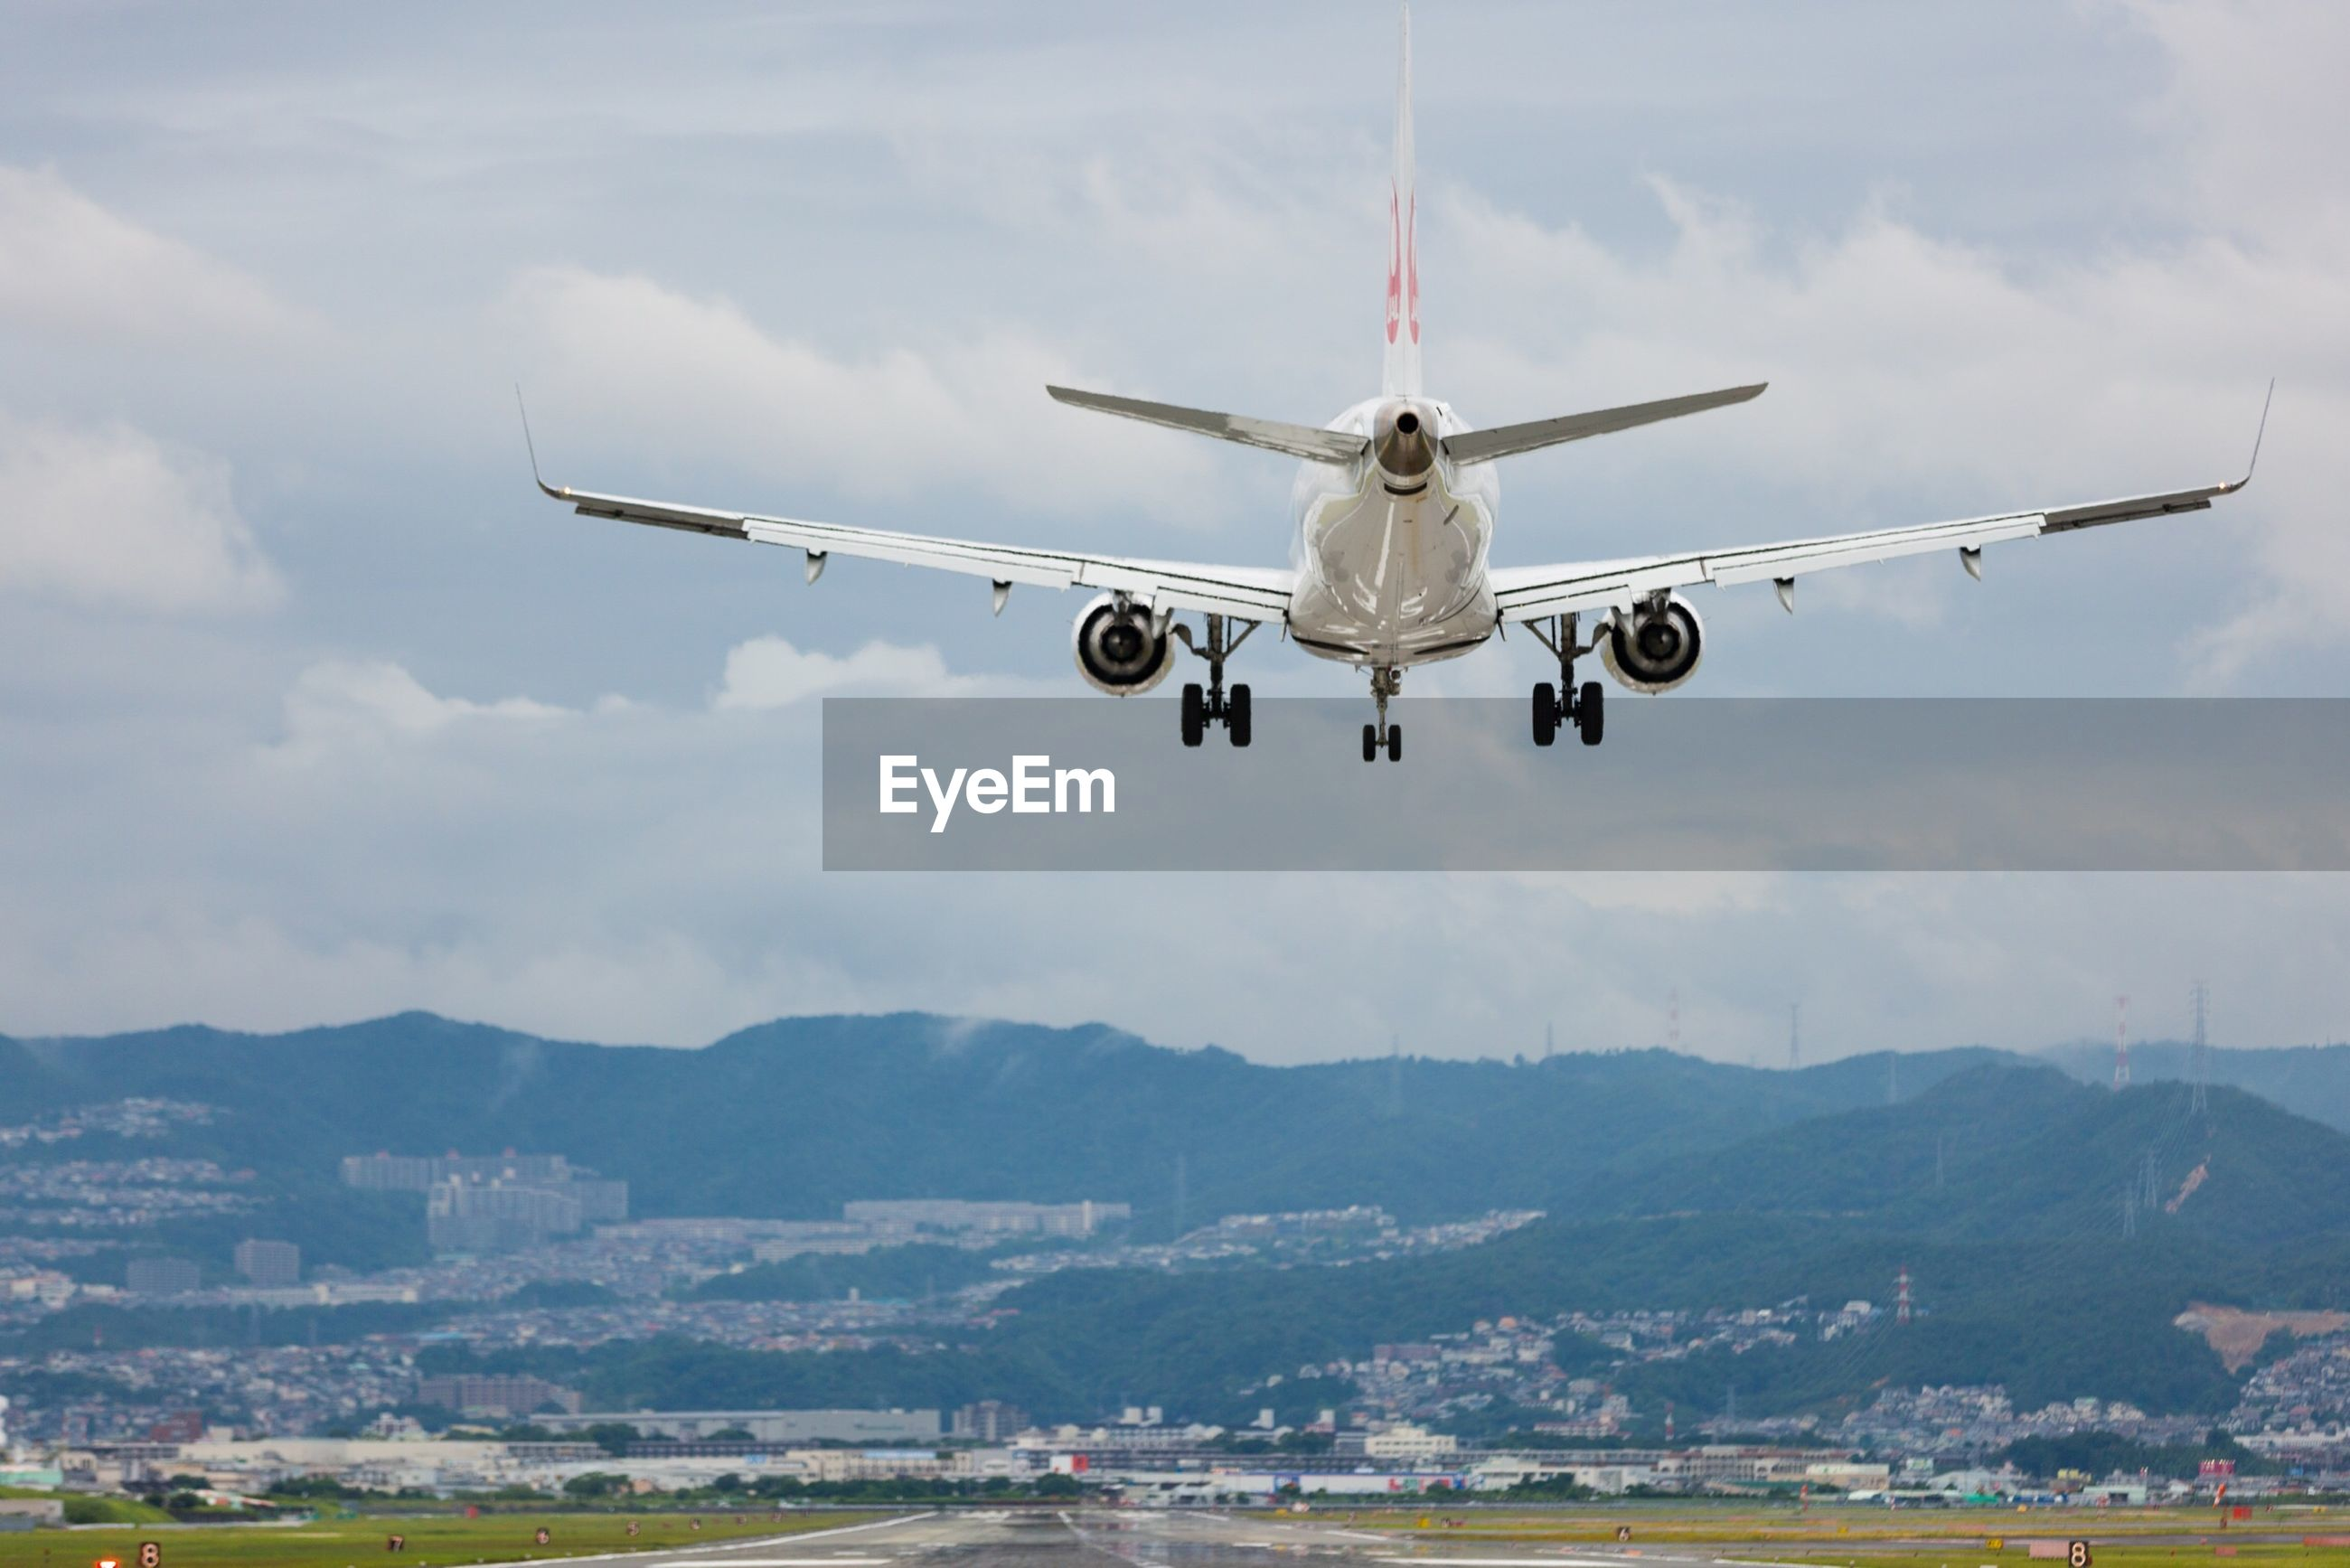 Airplane flying over runway against cloudy sky